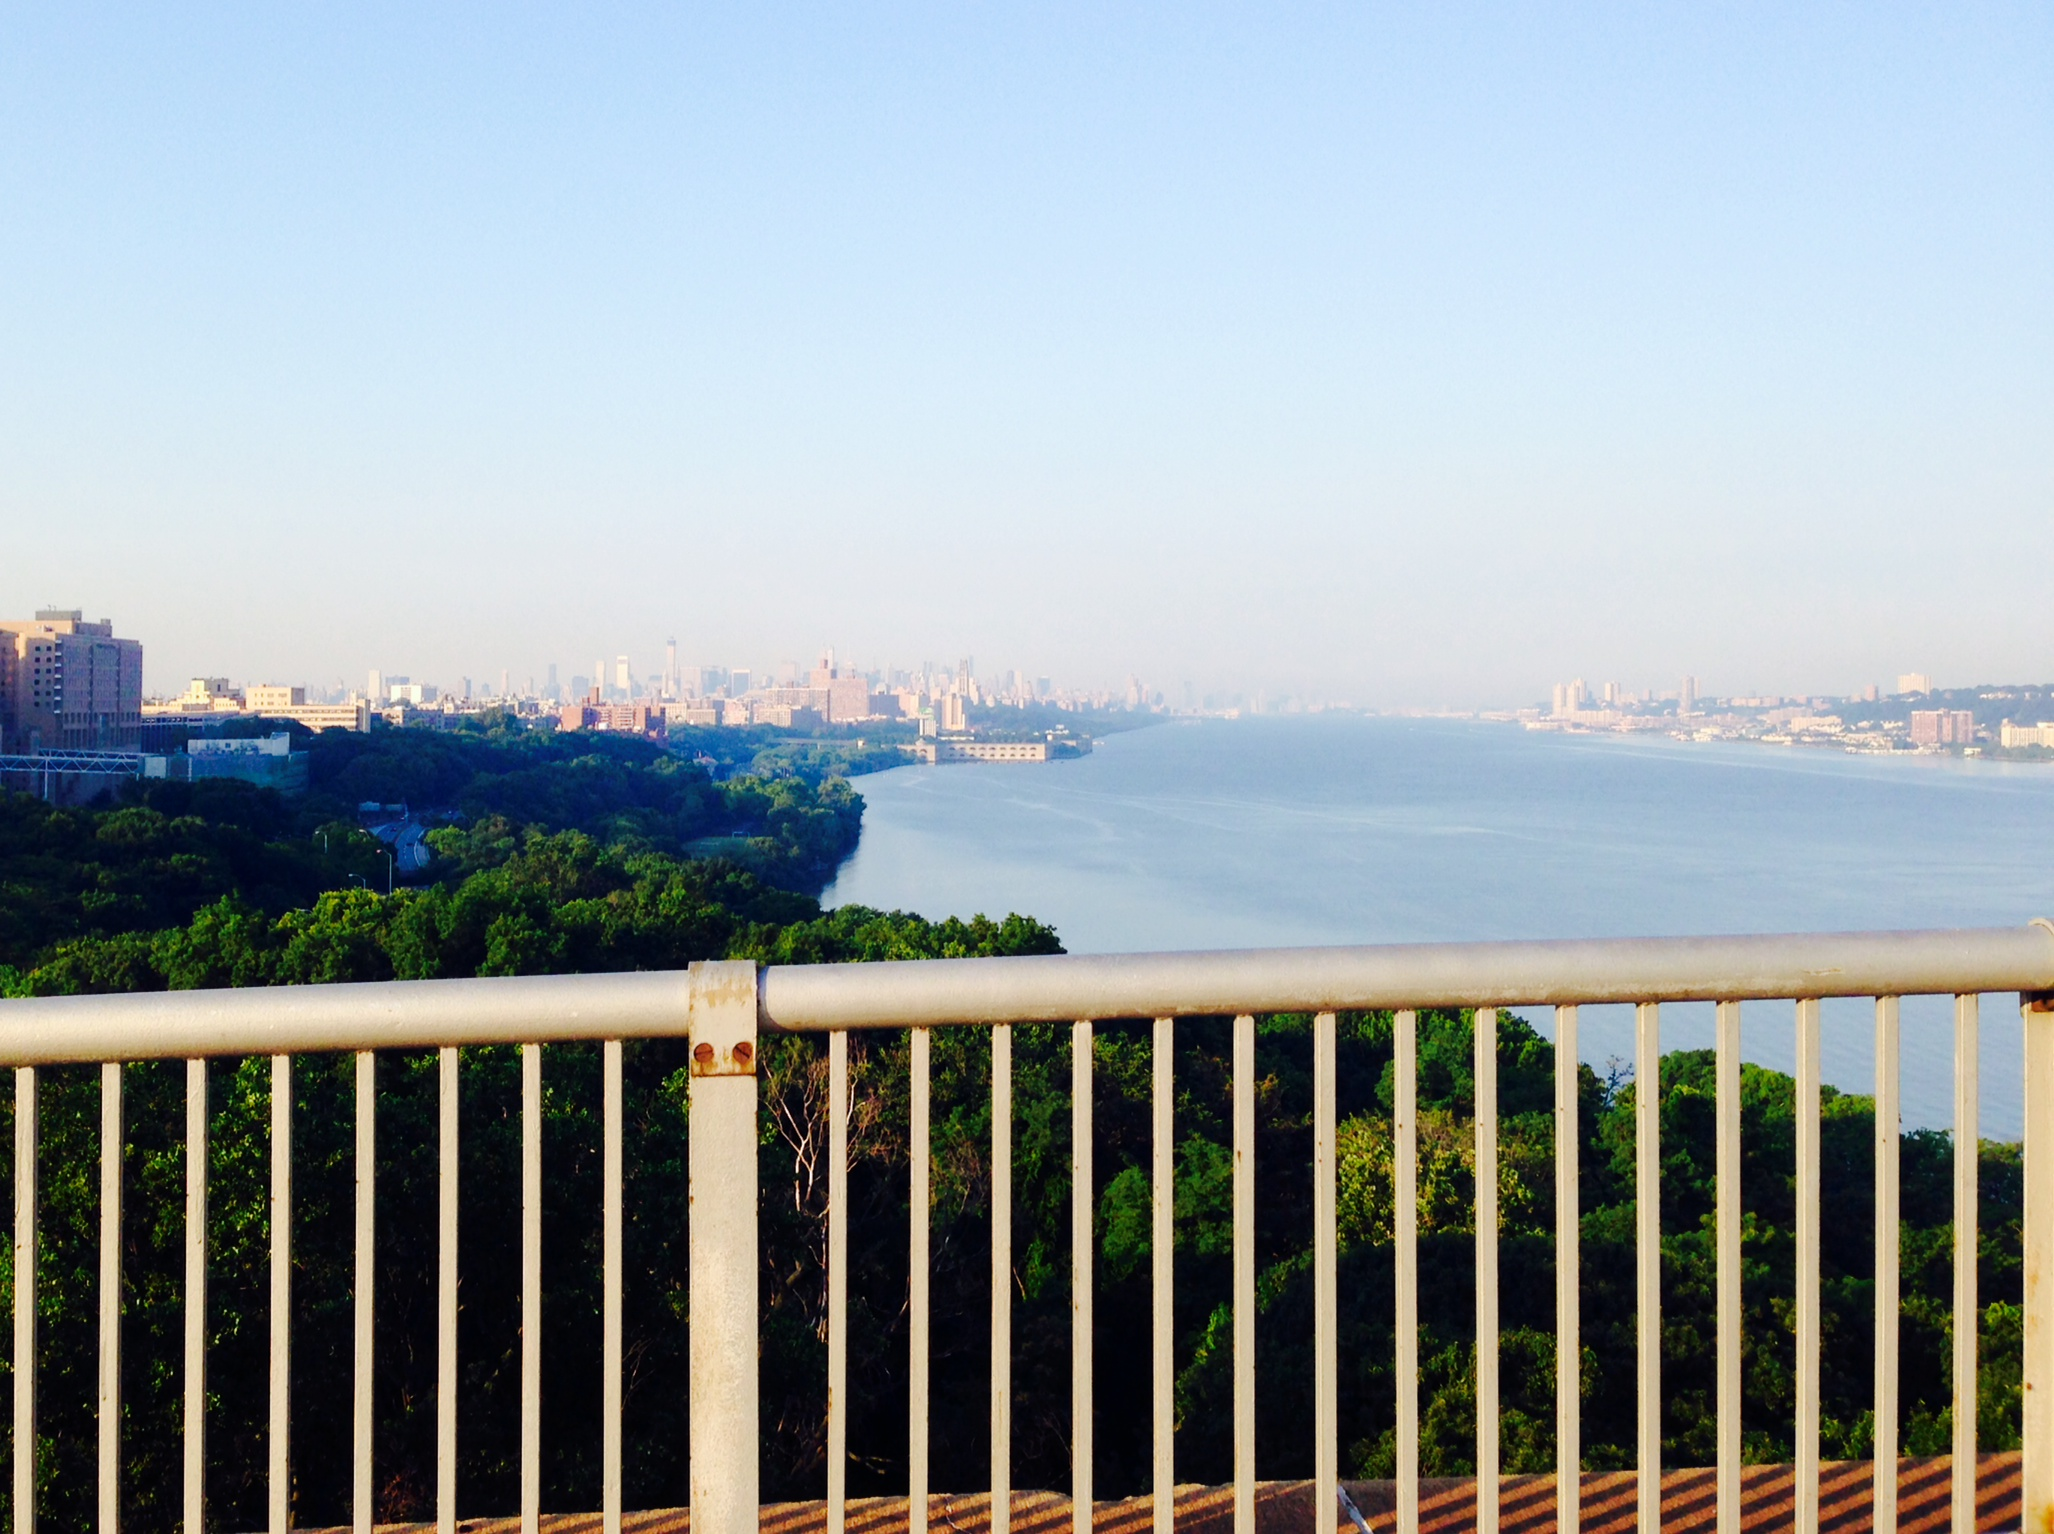 Looking out over the Hudson from the bike path on the bridge. Photo by Camille Aussourd.